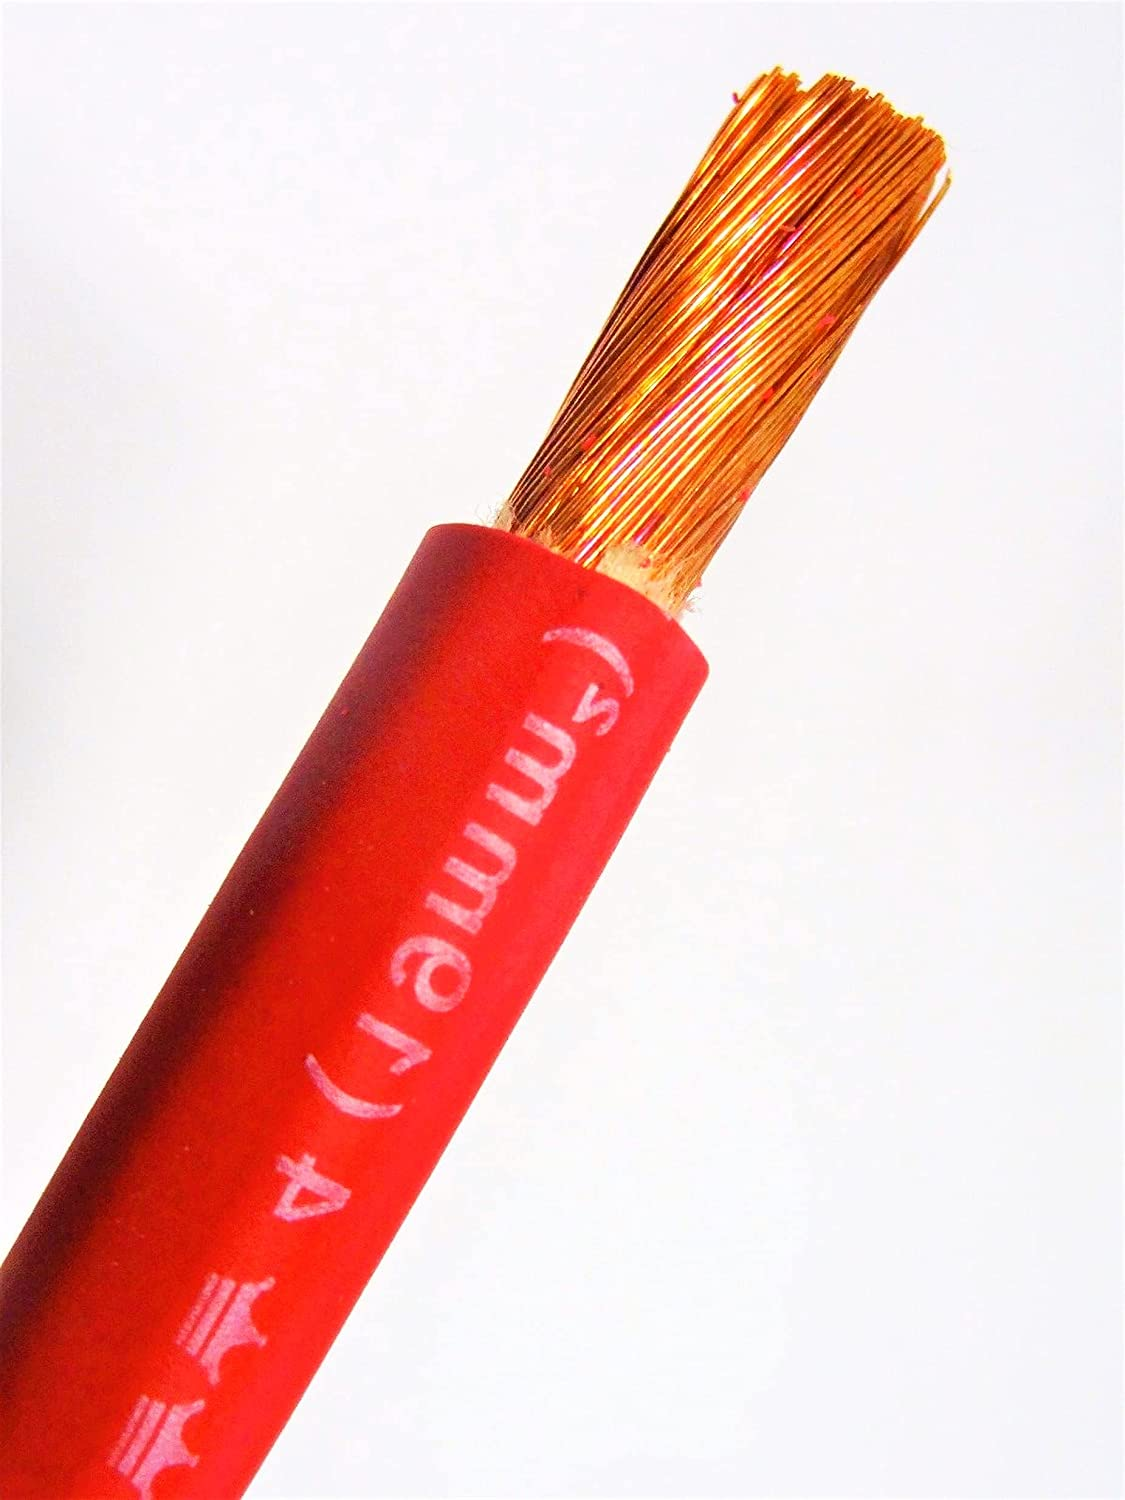 New 150' FT EXCELENE 4 AWG Leads Gauge RED Battery Recommendation Mail order cheap Cable Welding